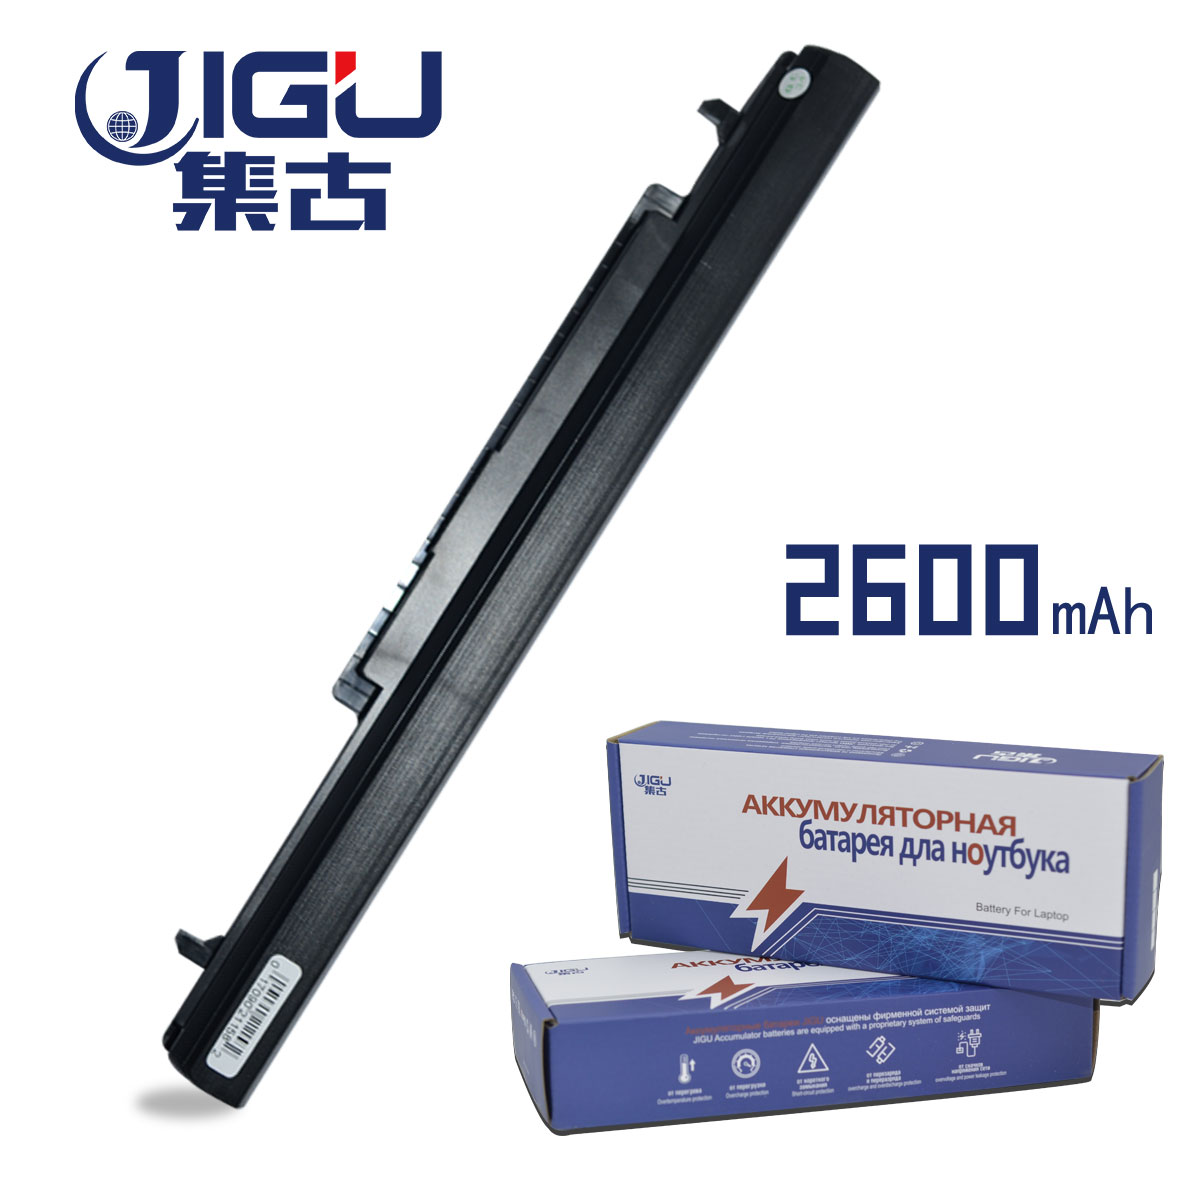 JIGU New Replacement 4Cell Laptop Battery For Asus A56 A46 K56 K46 S56 S46 Series Replace A42-K56 A32-K56 A41-K56 A31-K56 Series